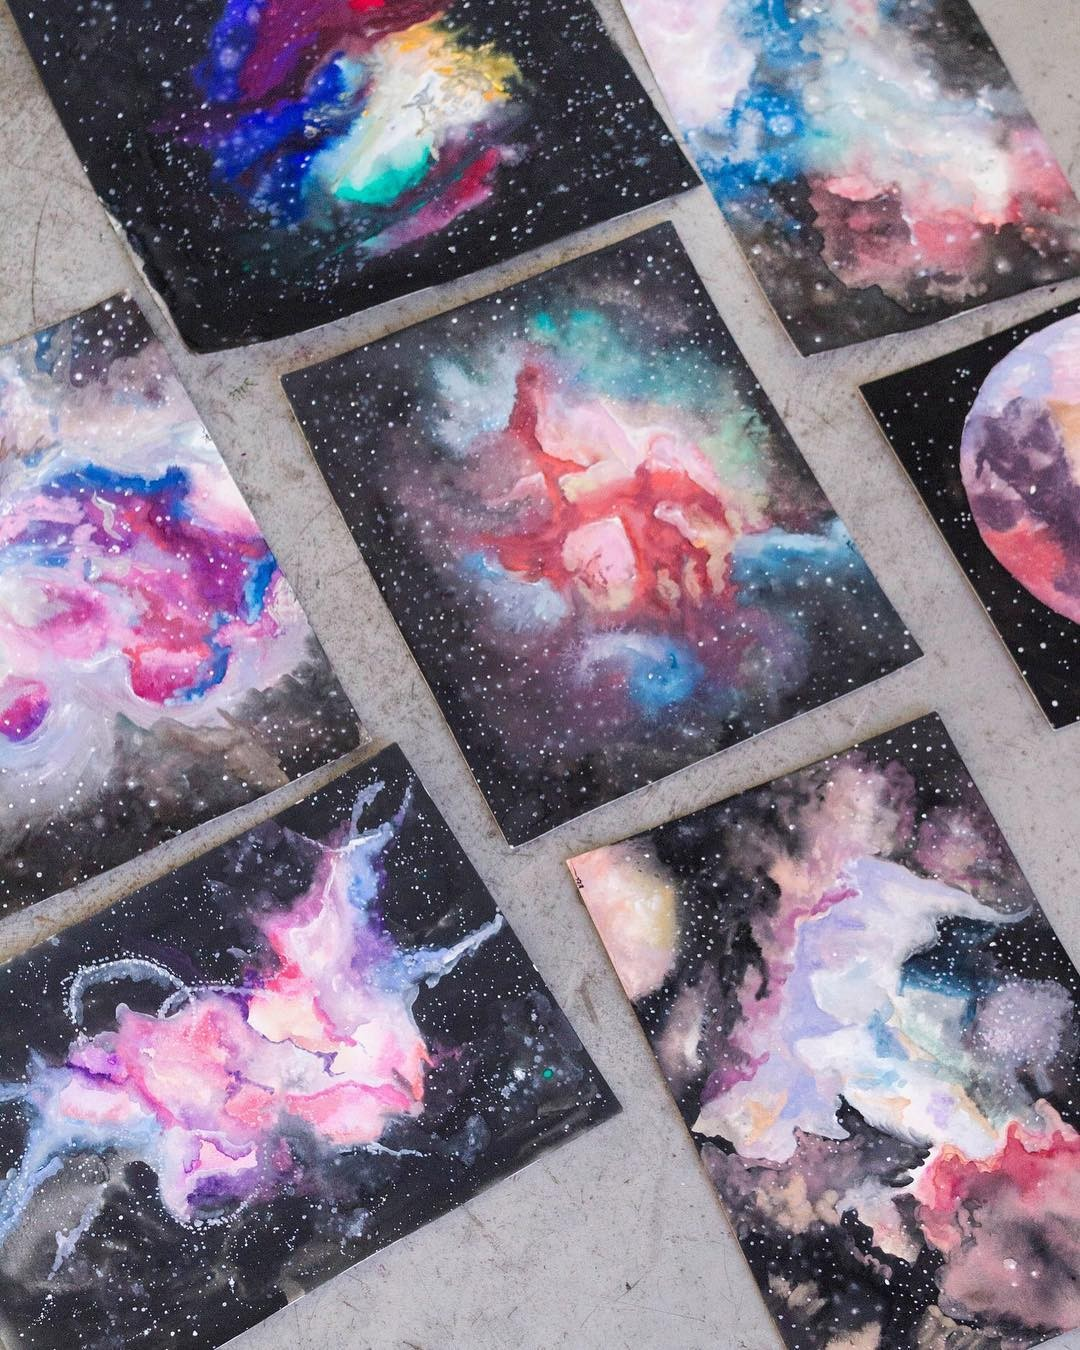 Discover new galaxies …